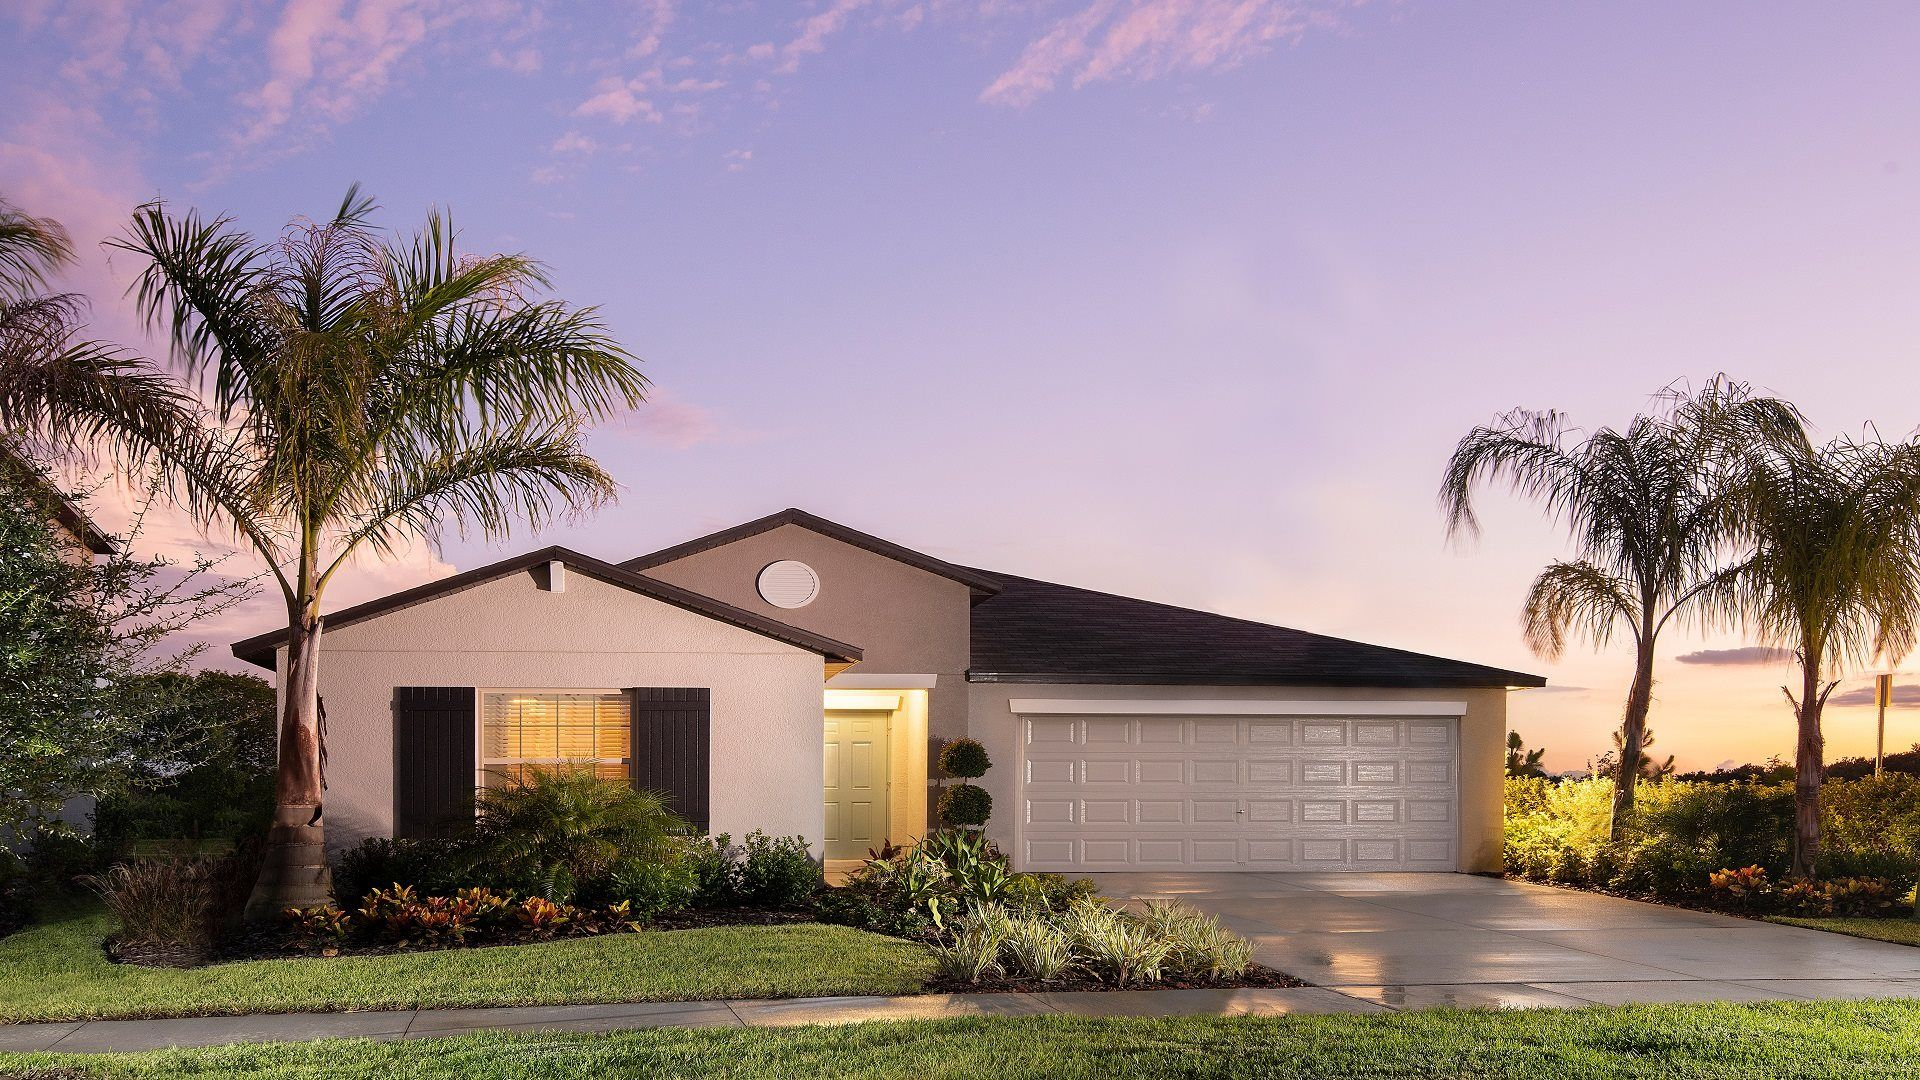 'Spencer Creek - The Estates' by Lennar - Central Florida in Tampa-St. Petersburg